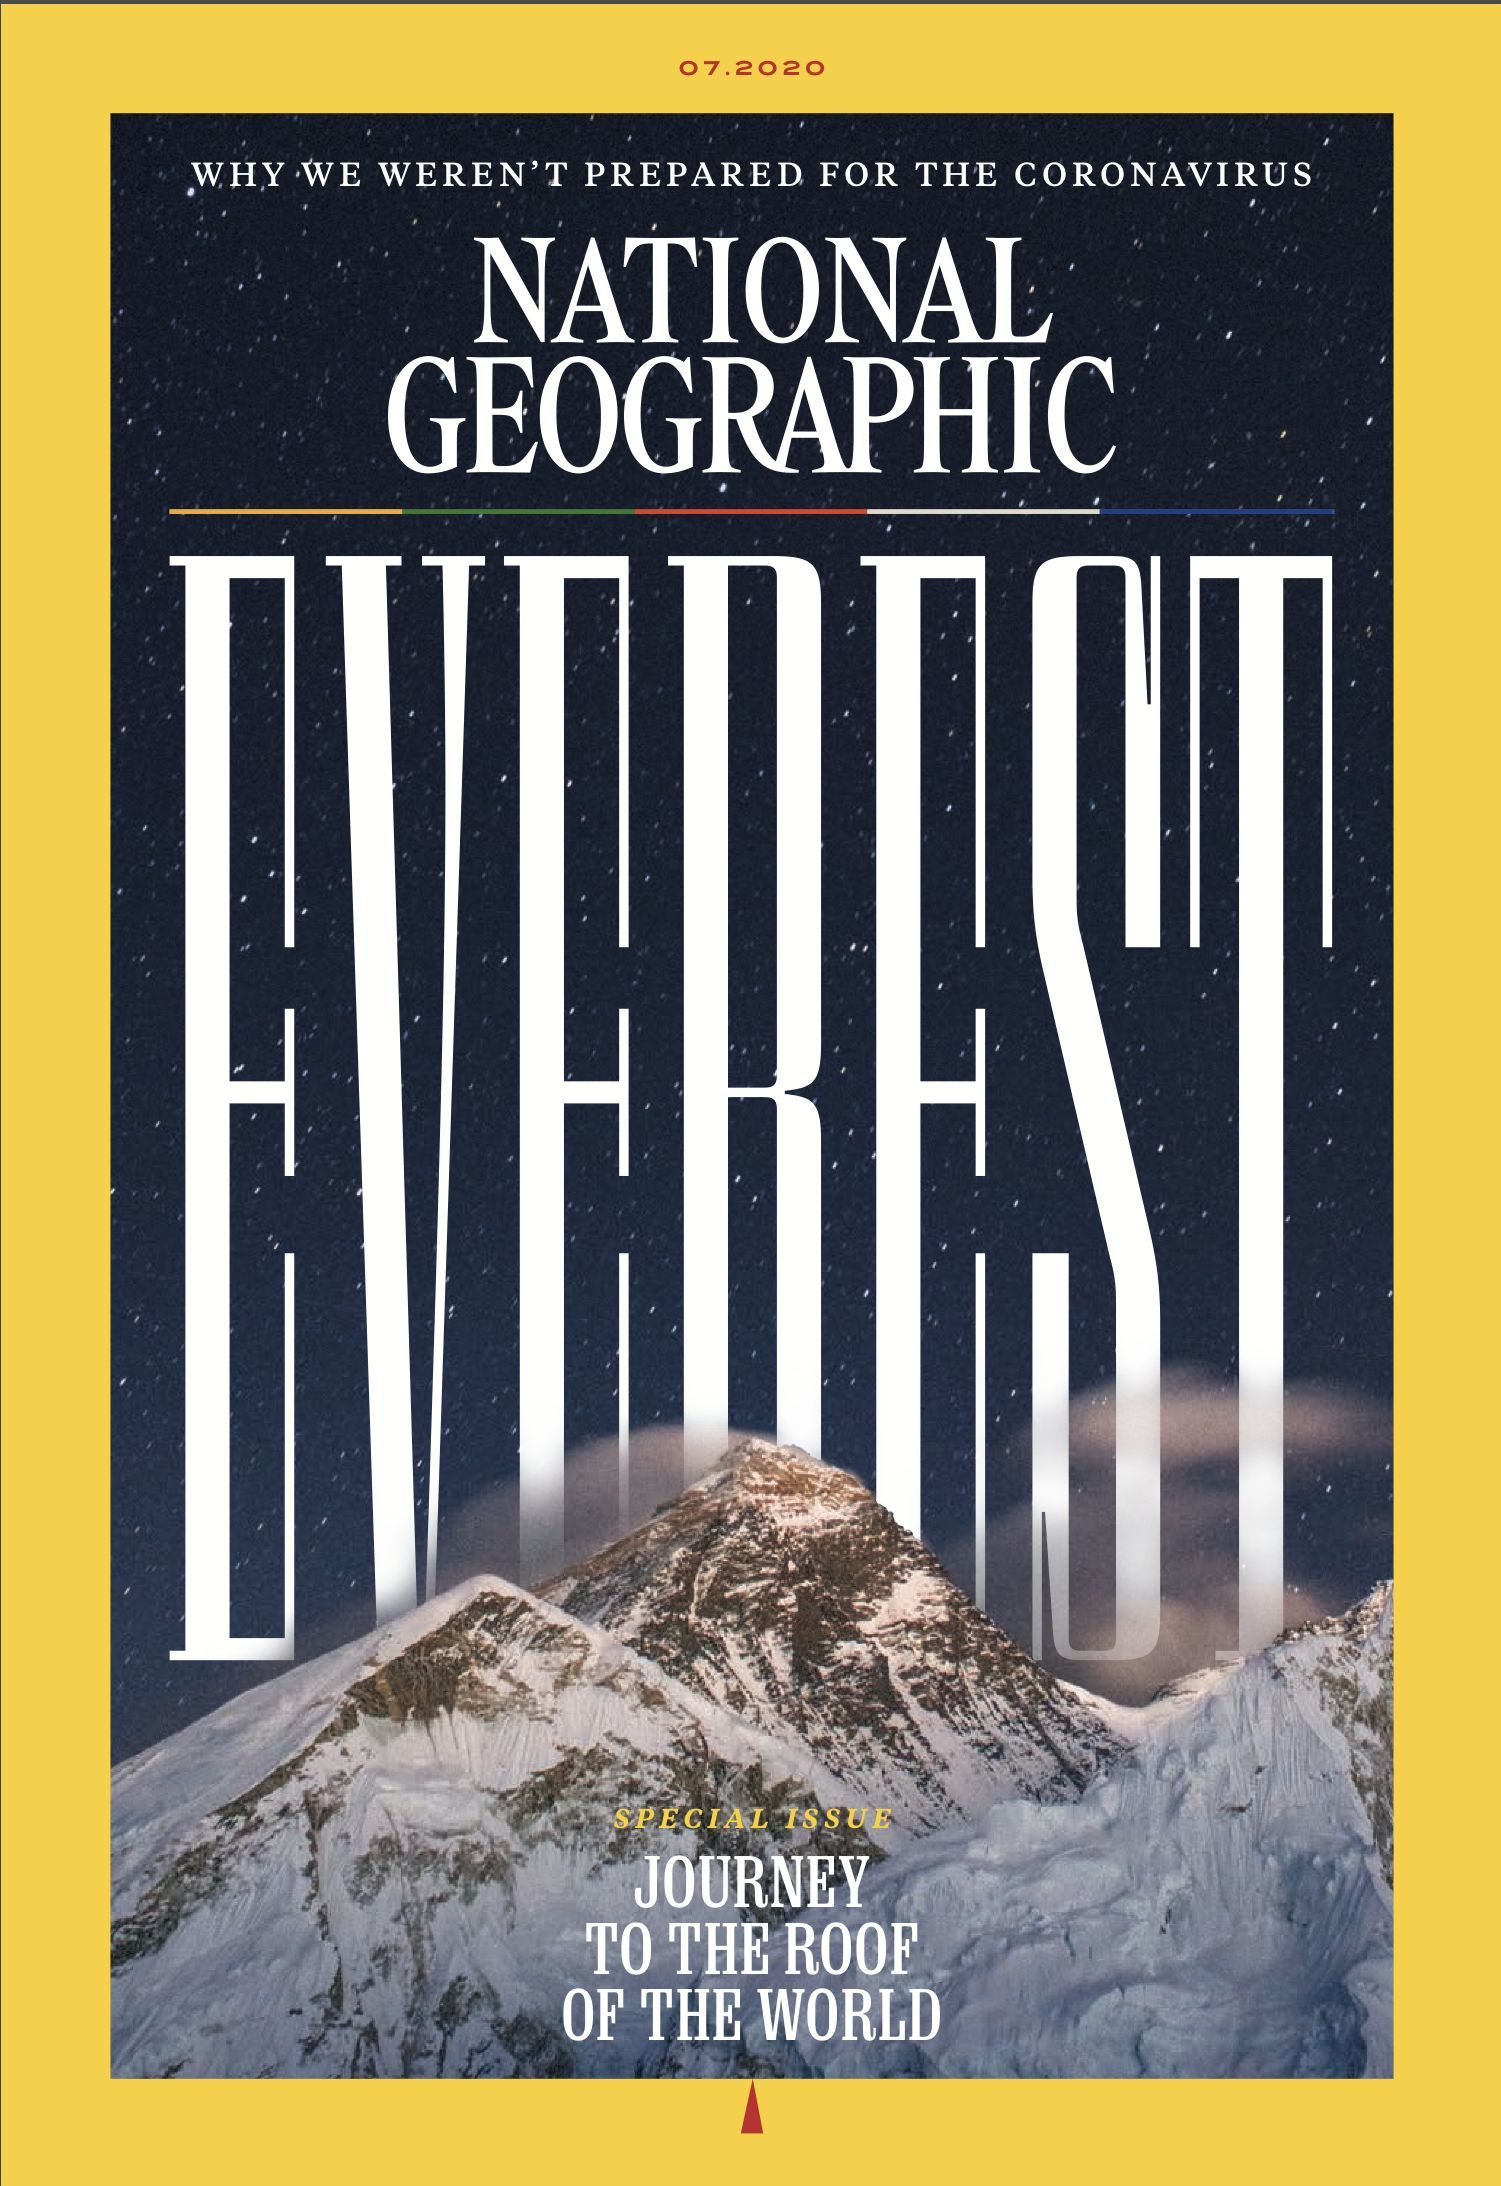 National Geographic と Scientific American_c0025115_22172872.jpg